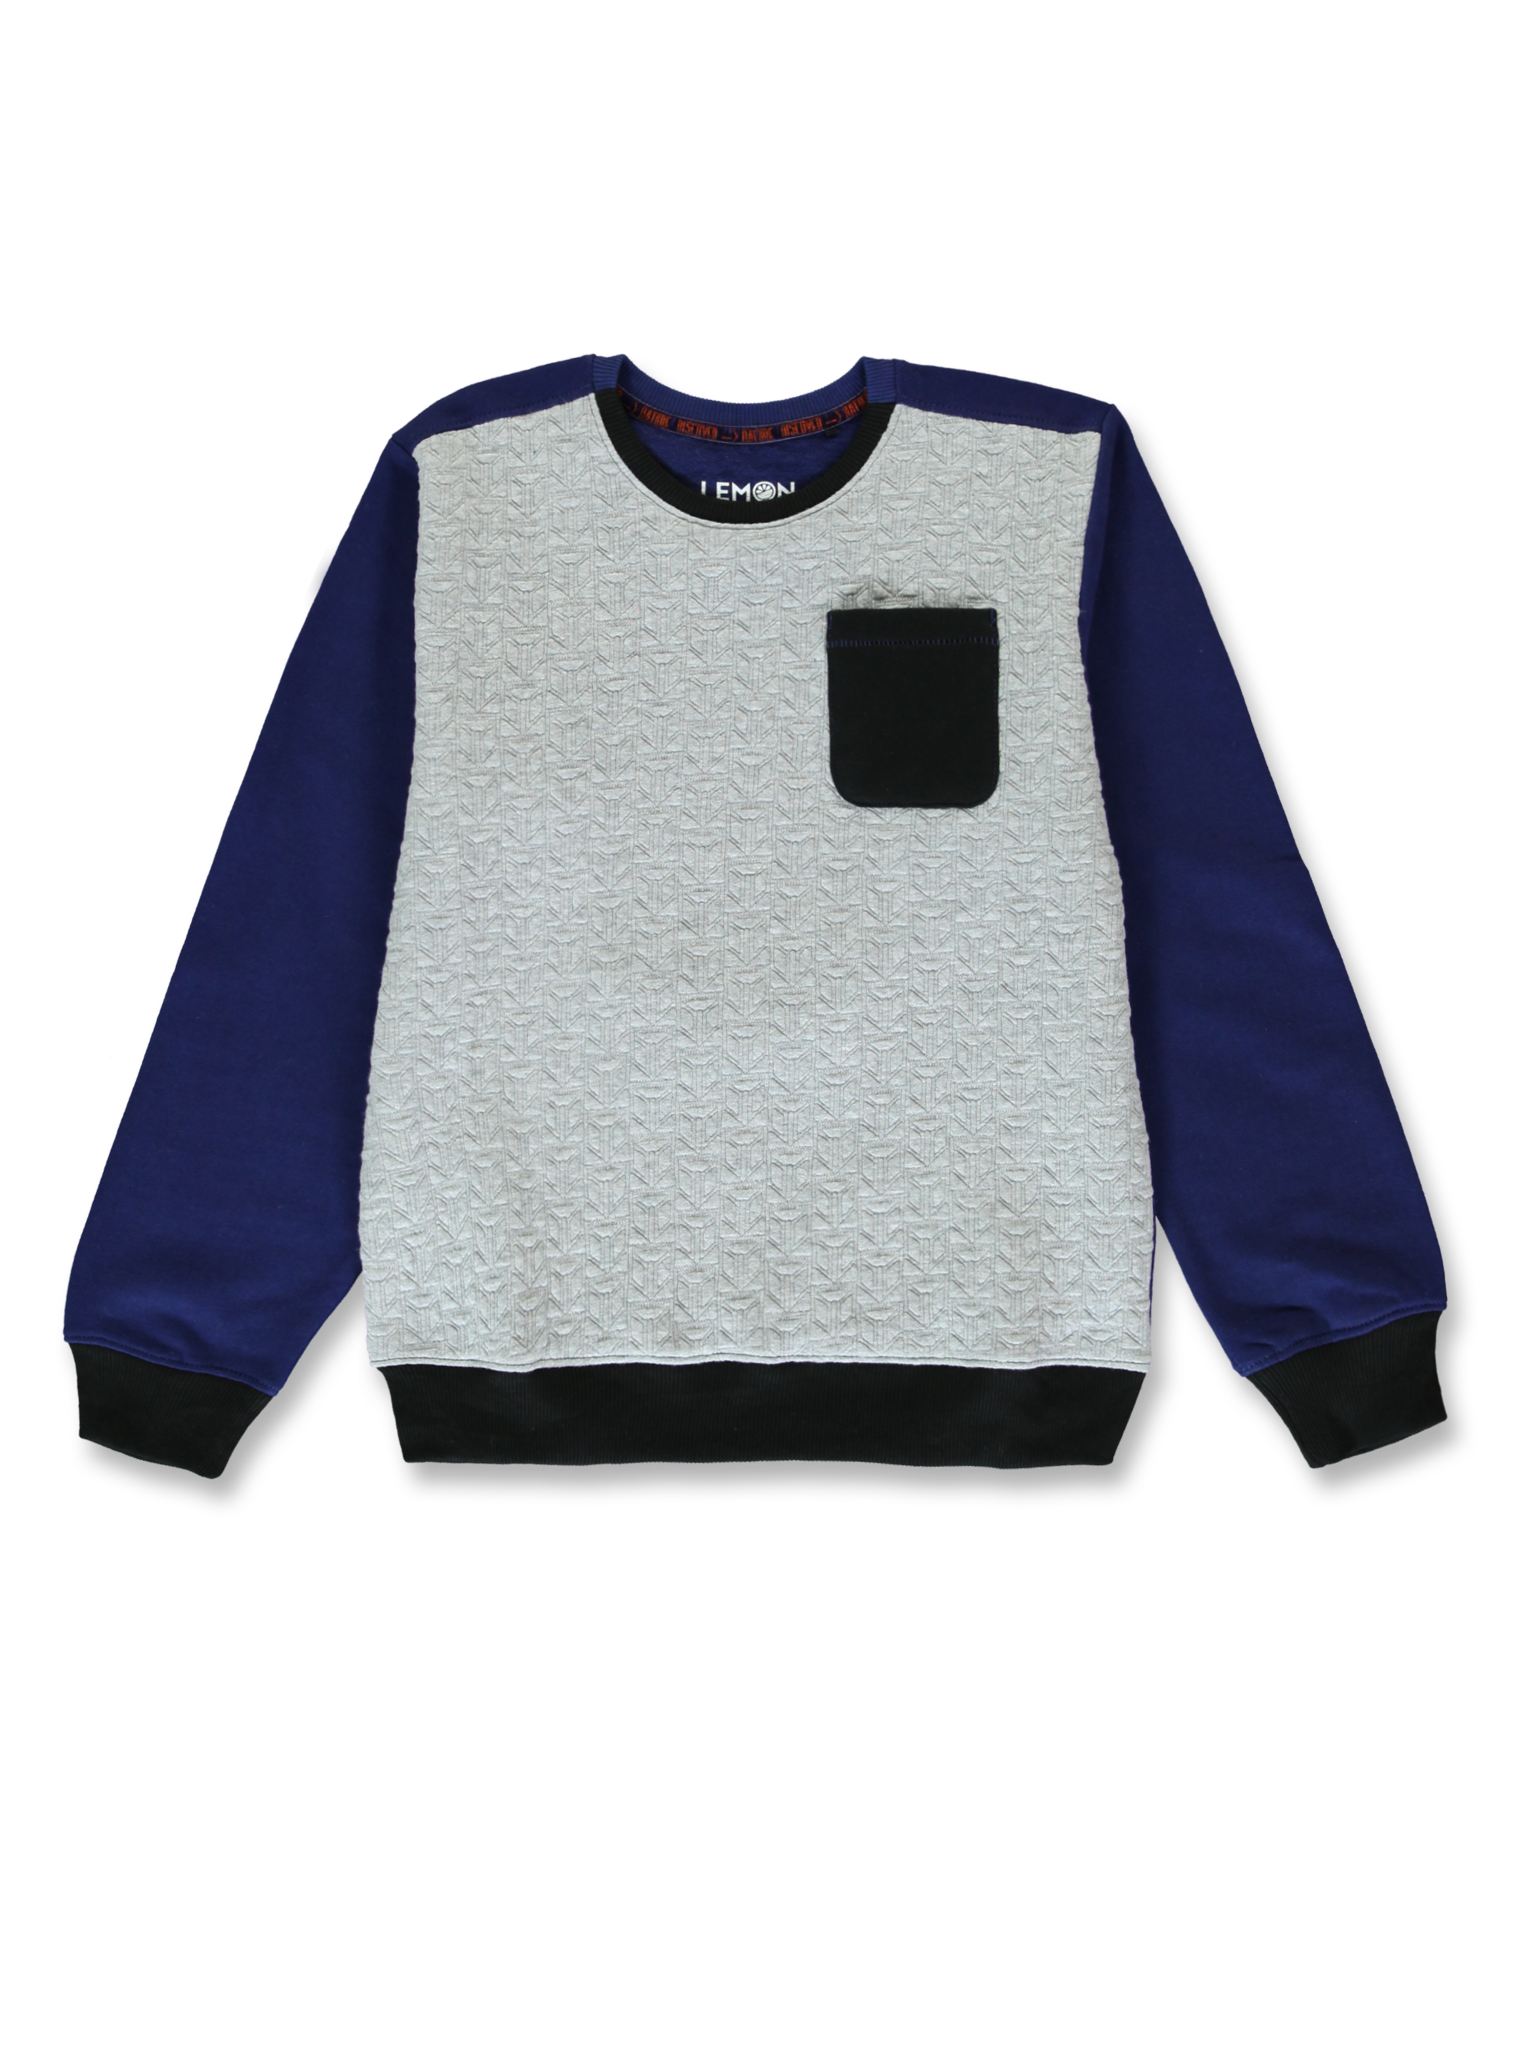 All Brands | Winterproducts Teen Boys | Sweatshirt | 12 pcs/box